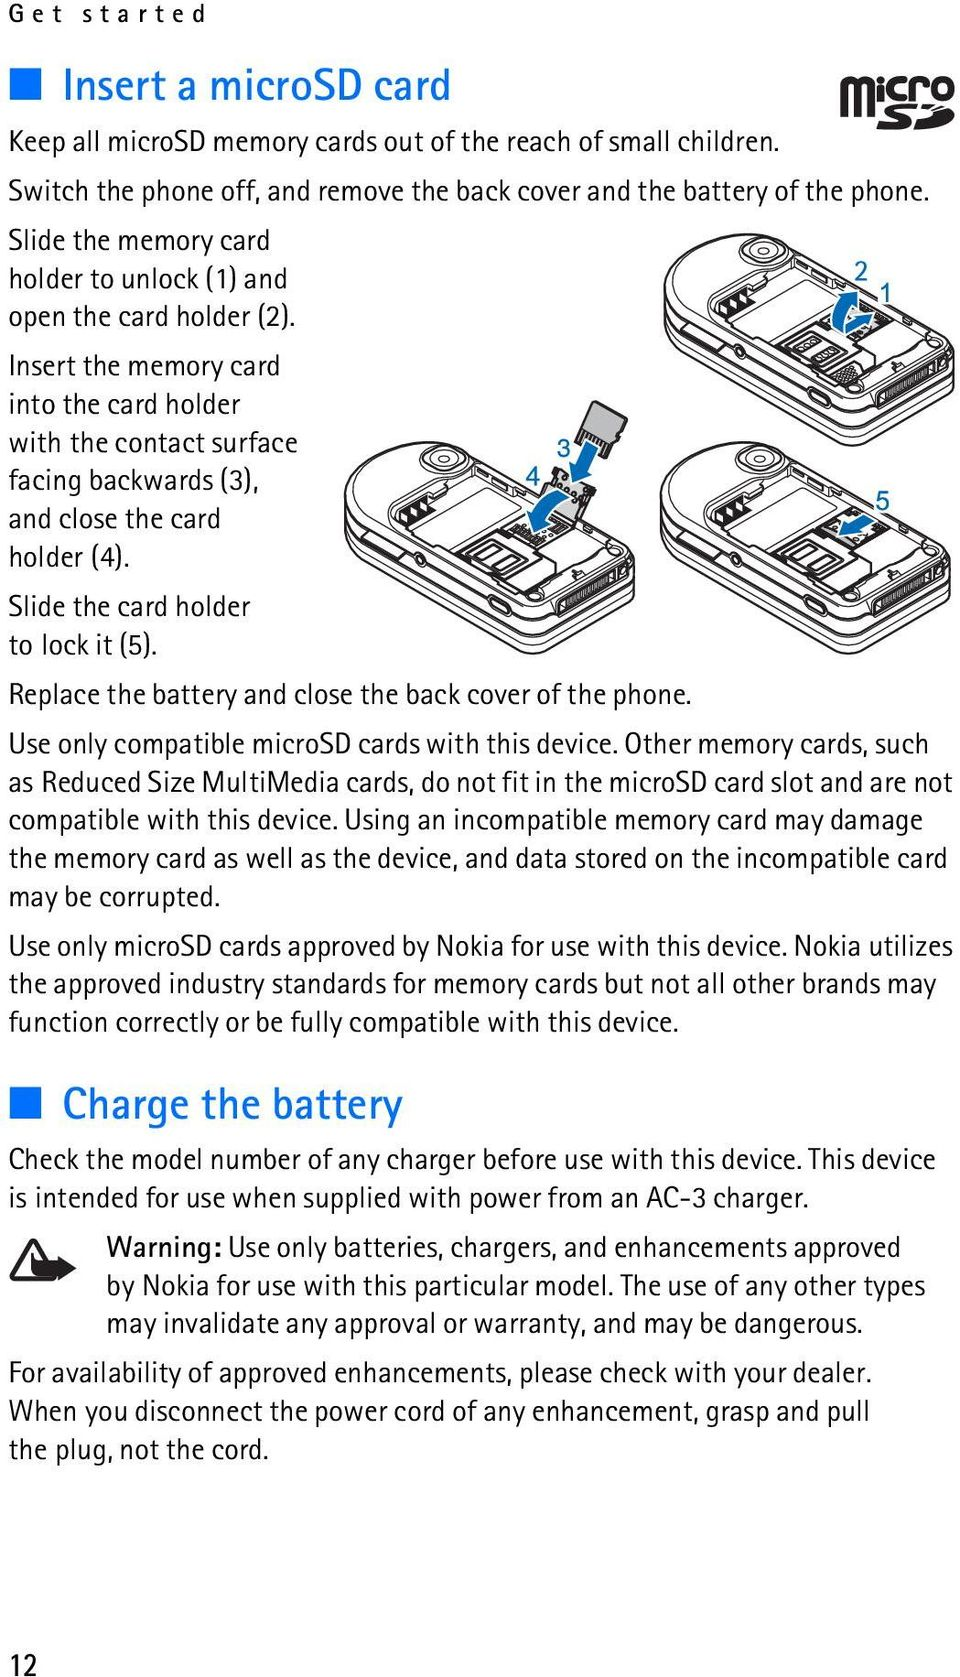 Slide the card holder to lock it (5). Replace the battery and close the back cover of the phone. Use only compatible microsd cards with this device.